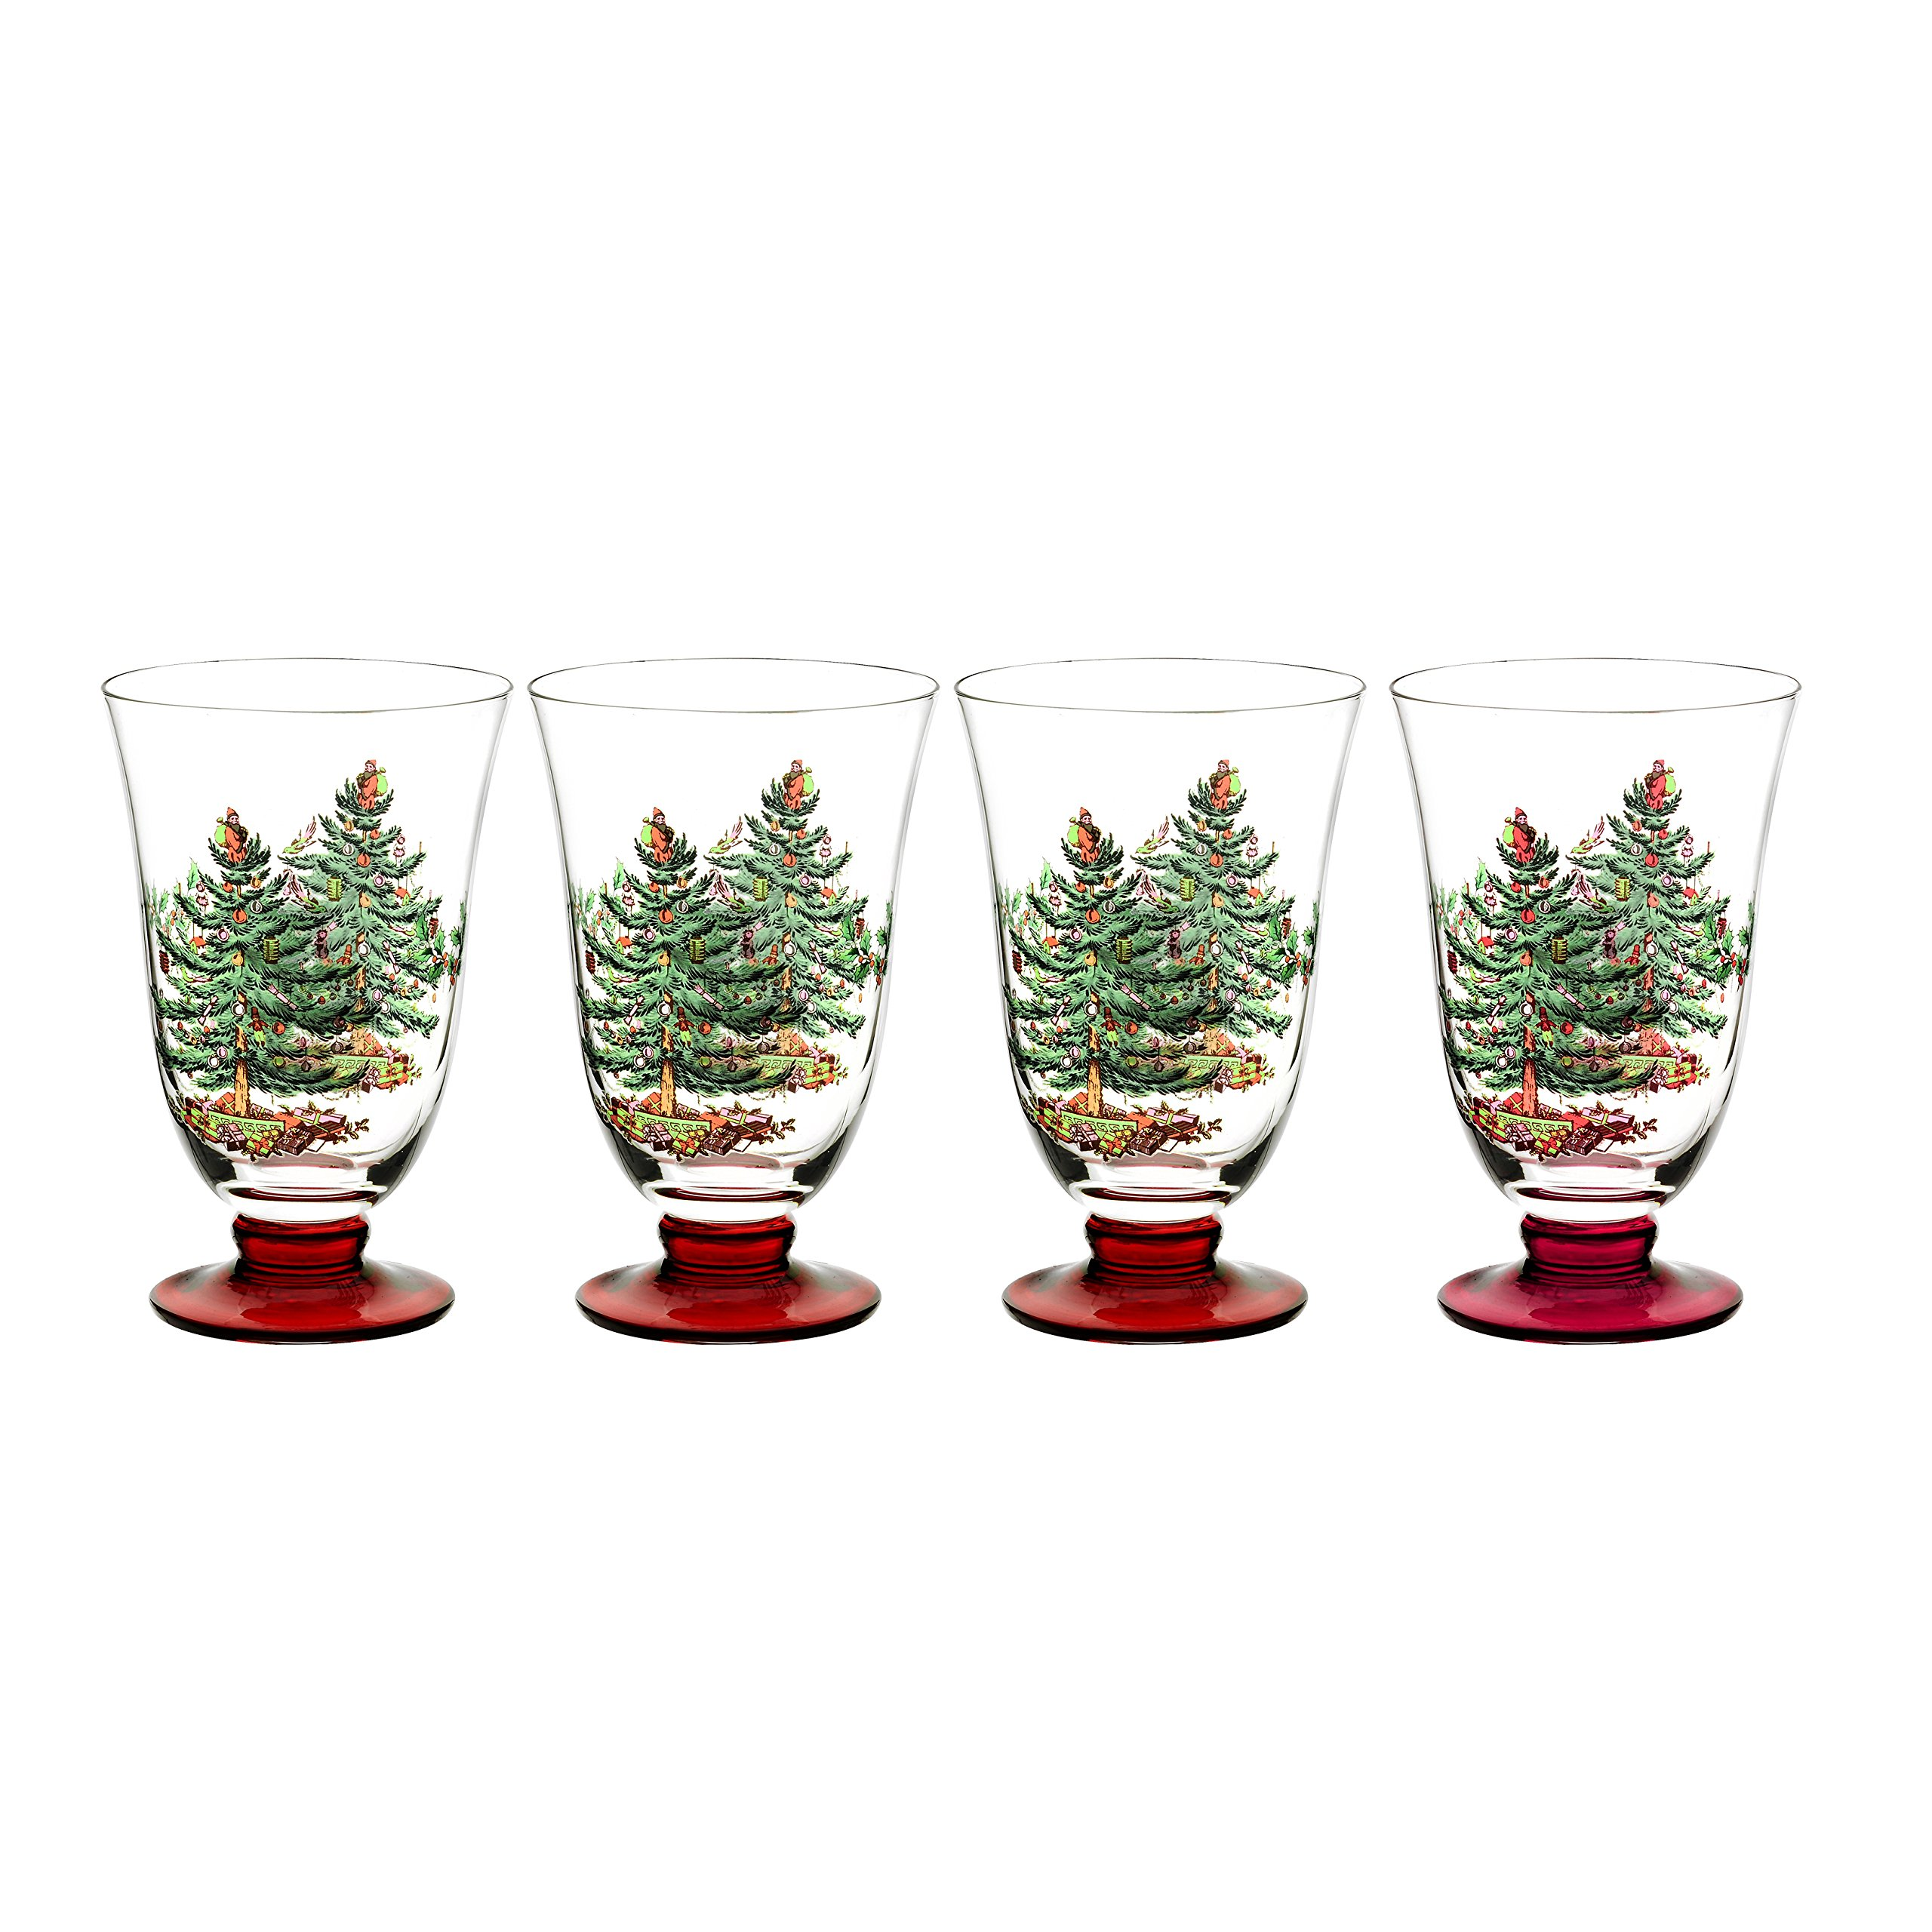 Spode Christmas Tree Glass Footed All Purpose Glasses with Red Stem, Set of 4, 18-ounce